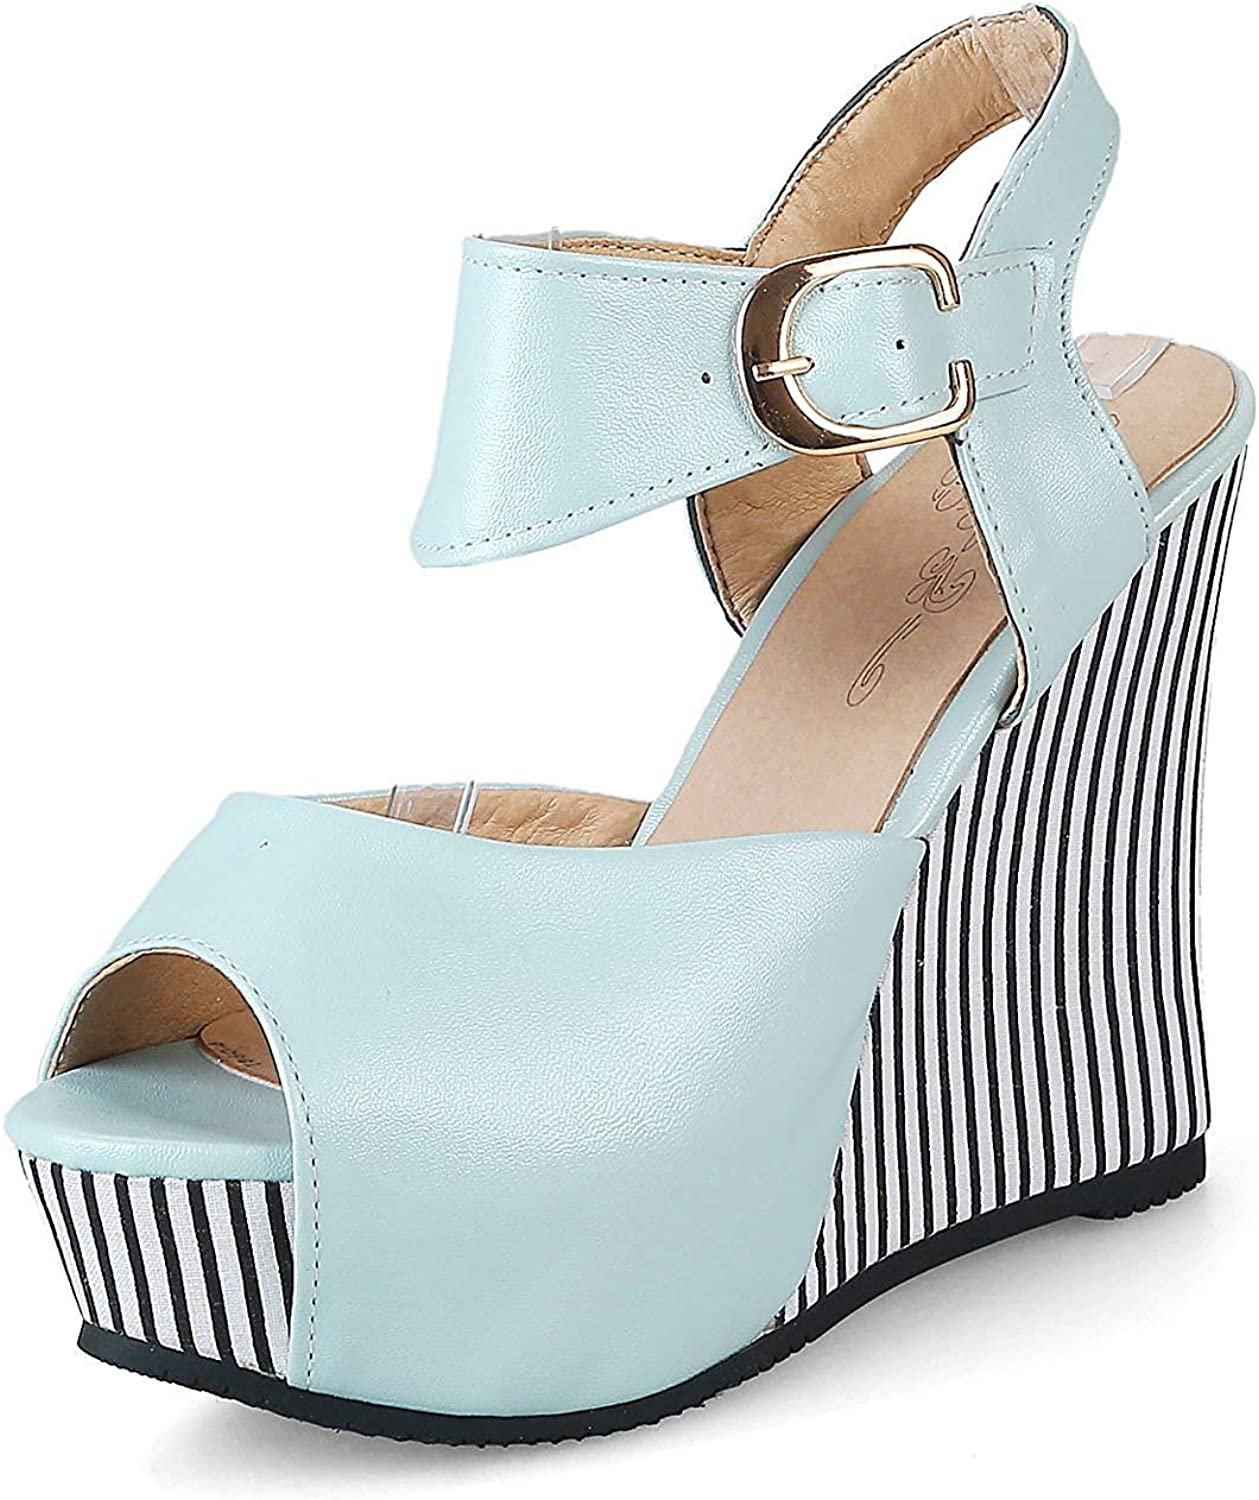 Unm Women's Peep Toe Wedge Sandals with Ankle Strap - Striped Buckled Platform - Trendy High Heel